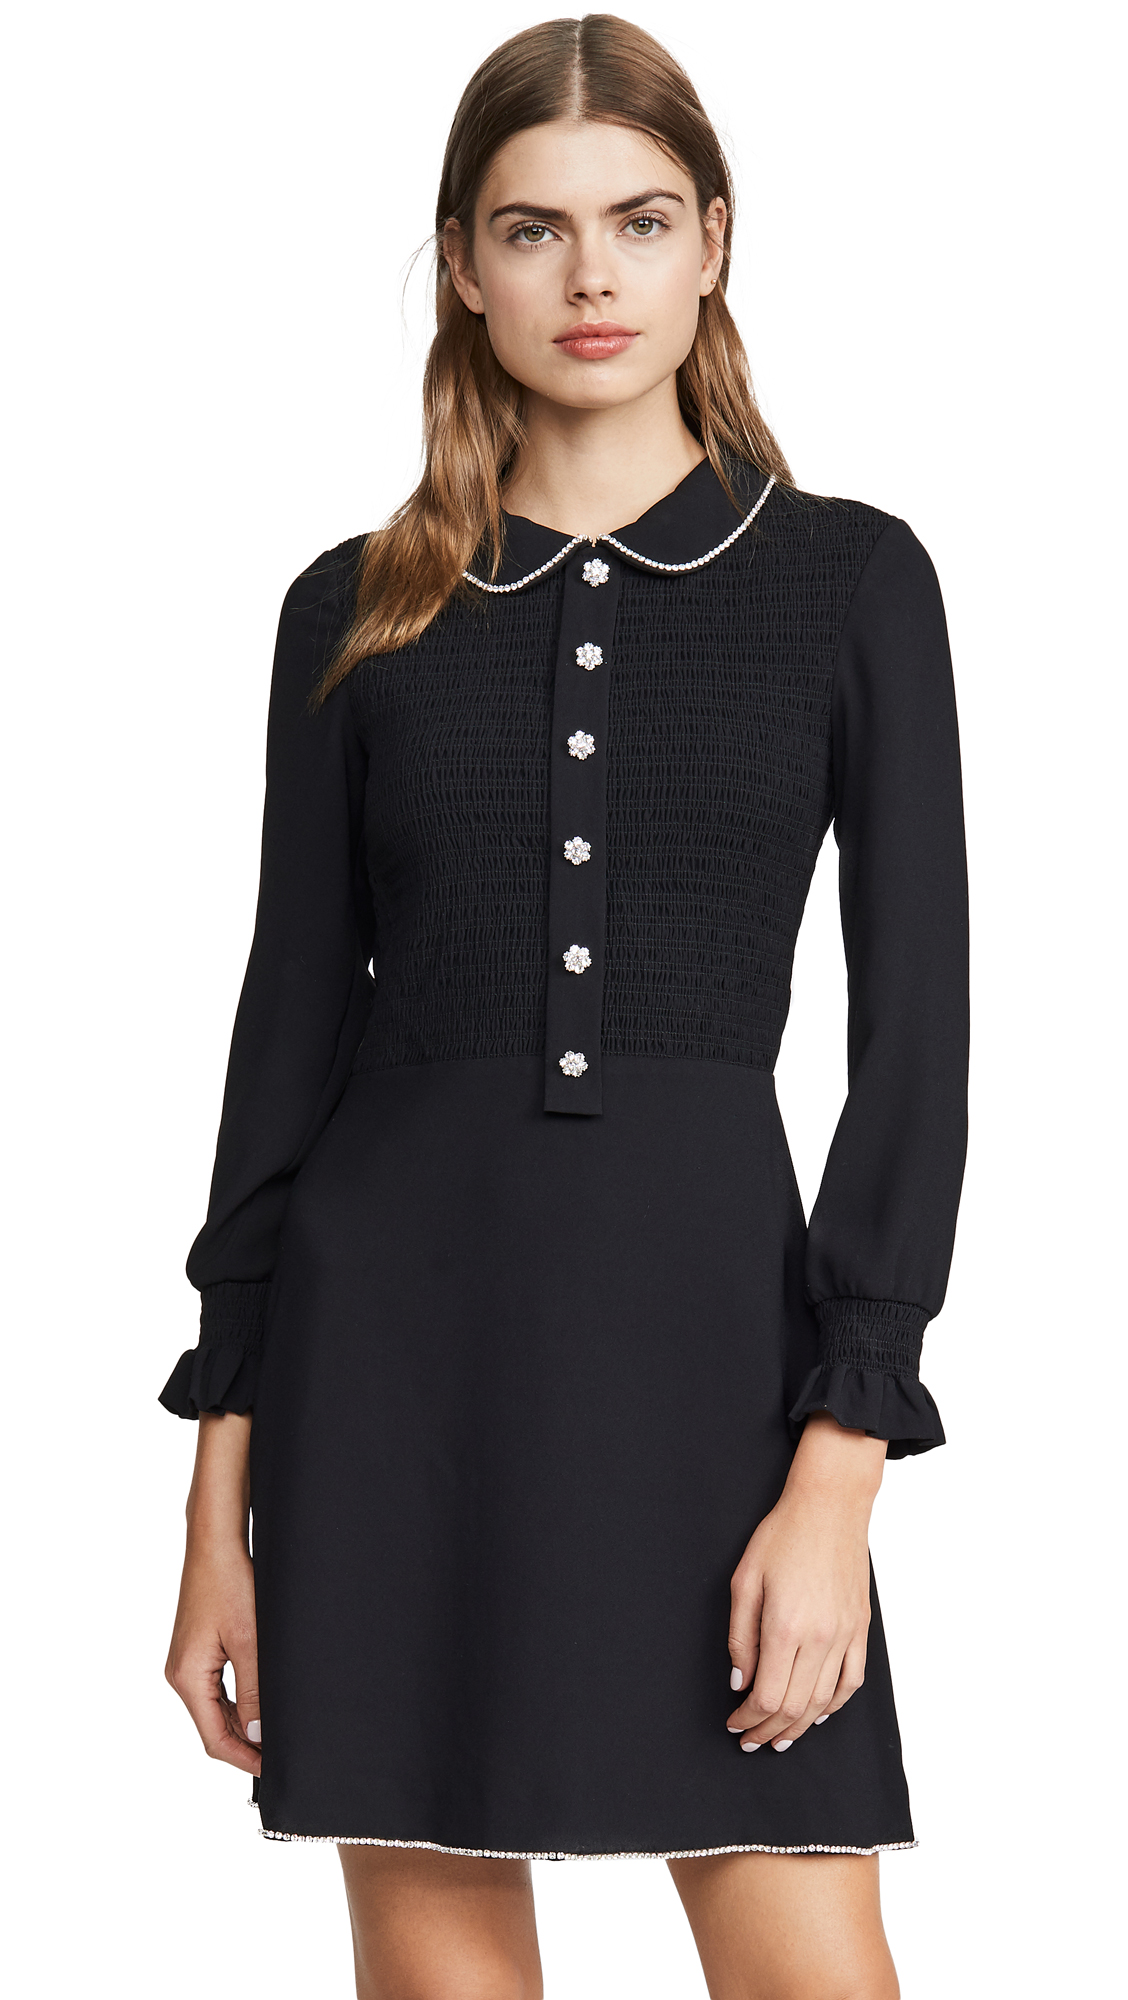 The Marc Jacobs The Little Black Dress - 55% Off Sale